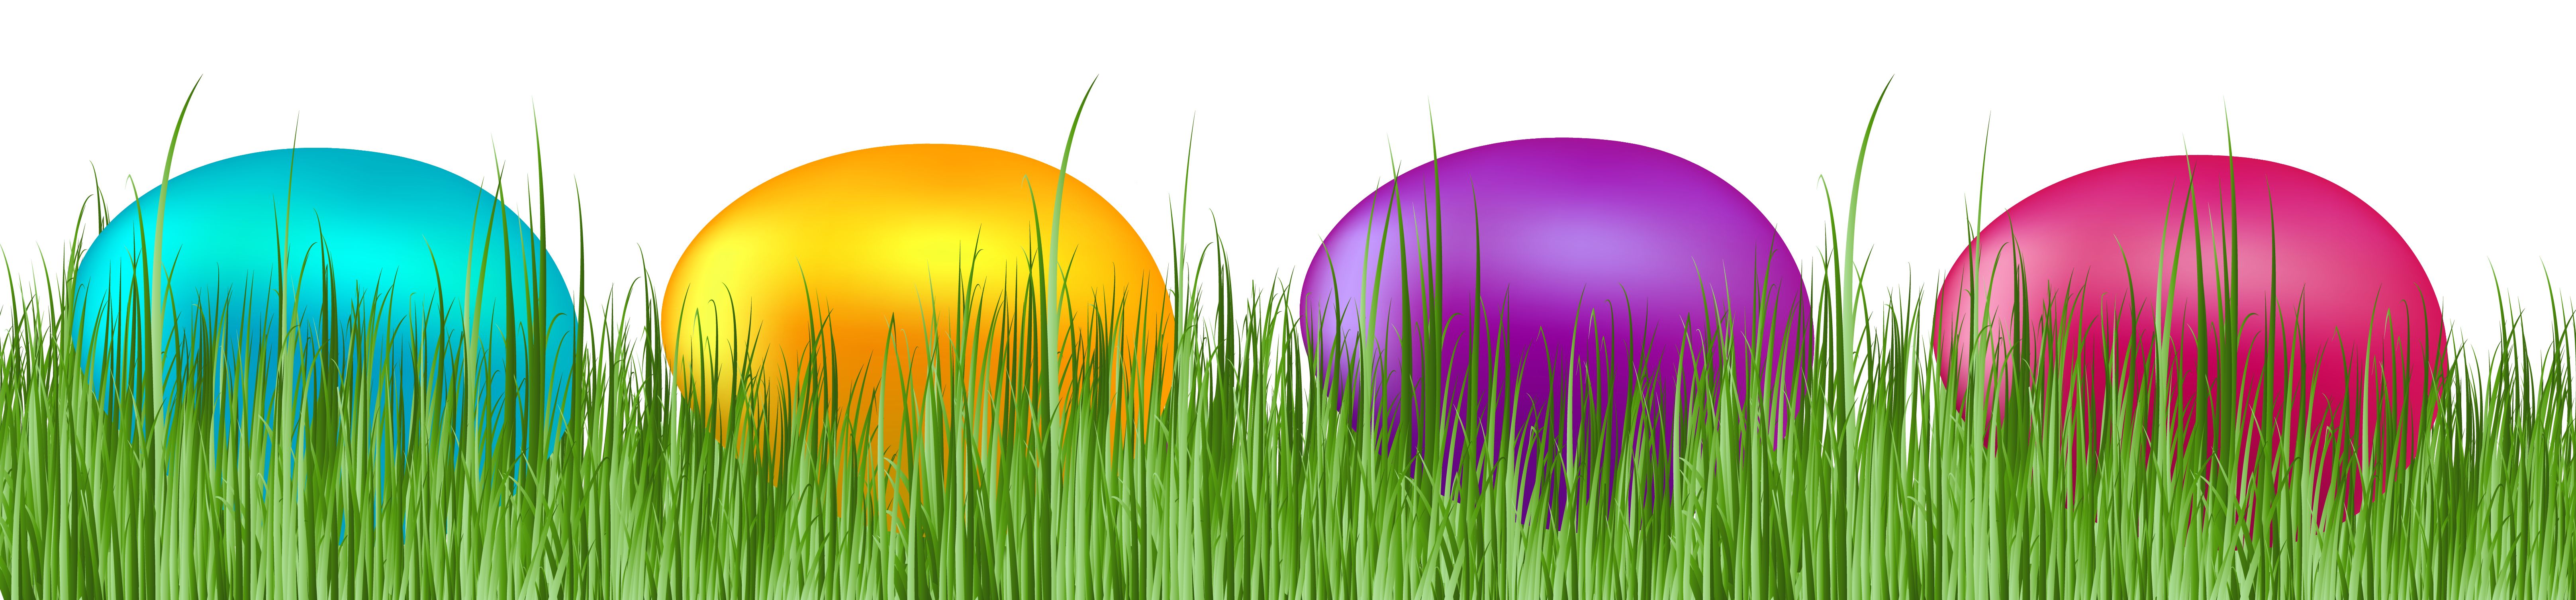 White clipart easter egg. Grass with eggs transparent